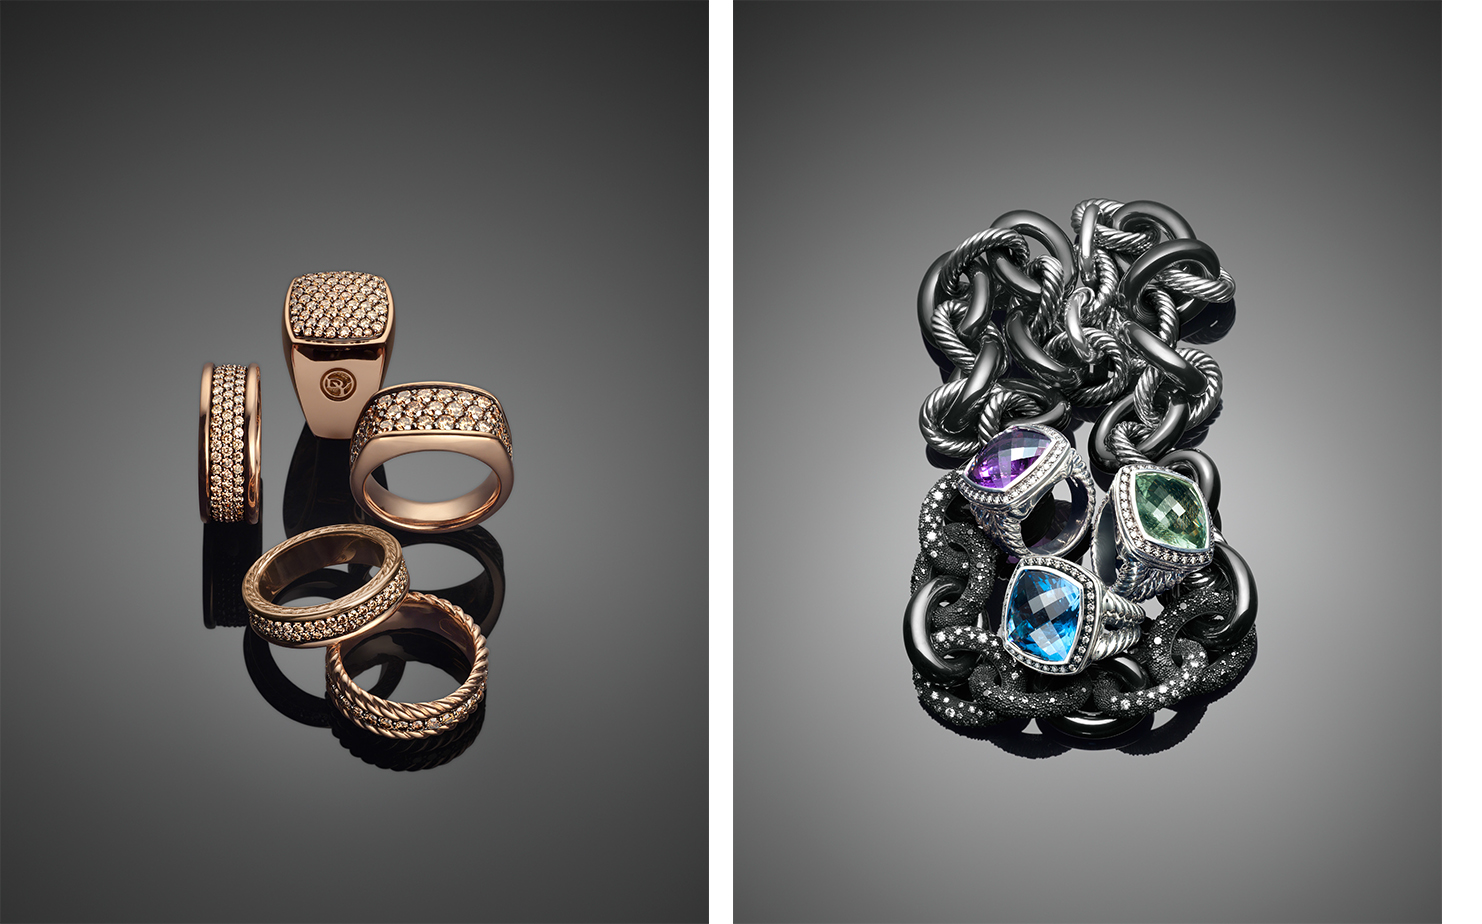 David Yurman   AGENCY Lipman CREATIVE DIRECTOR Amir Zia